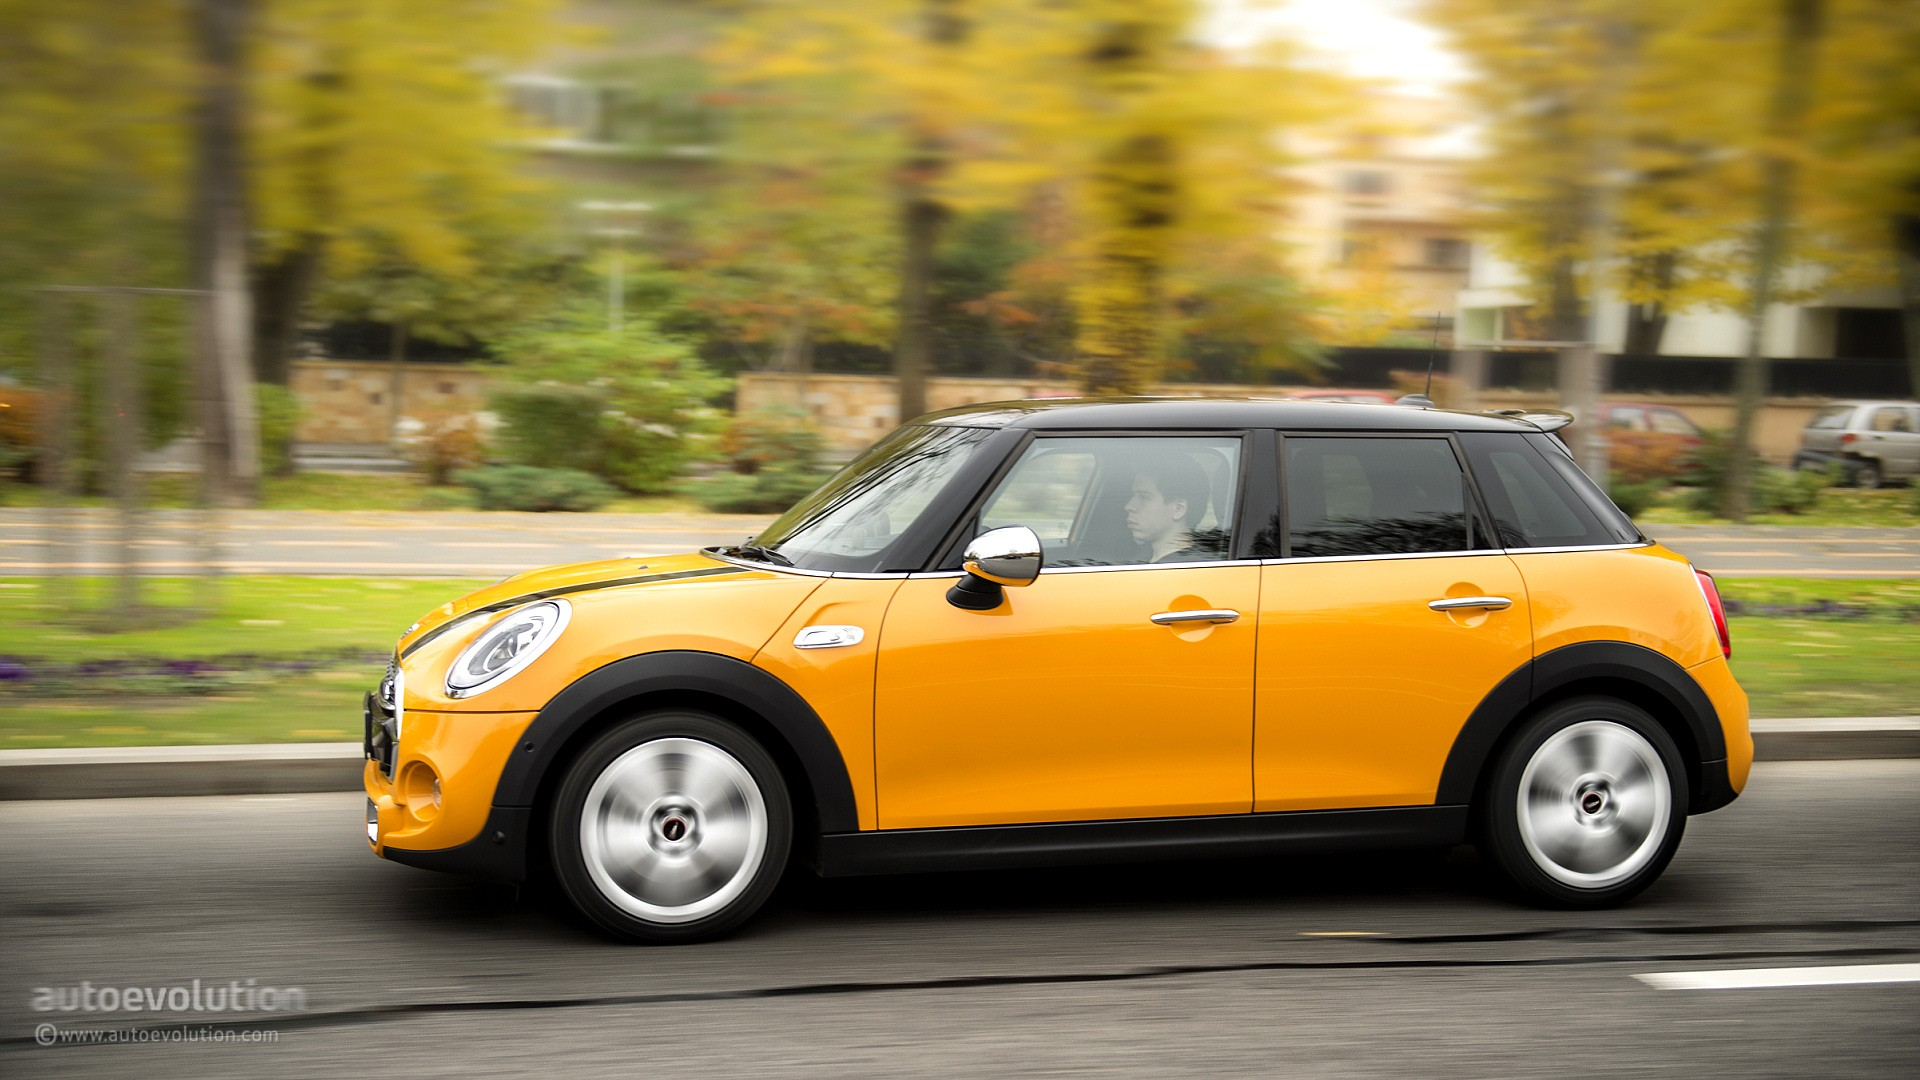 Mini Cooper Evolution >> 2014 MINI Cooper S Hardtop 5-door Review - autoevolution